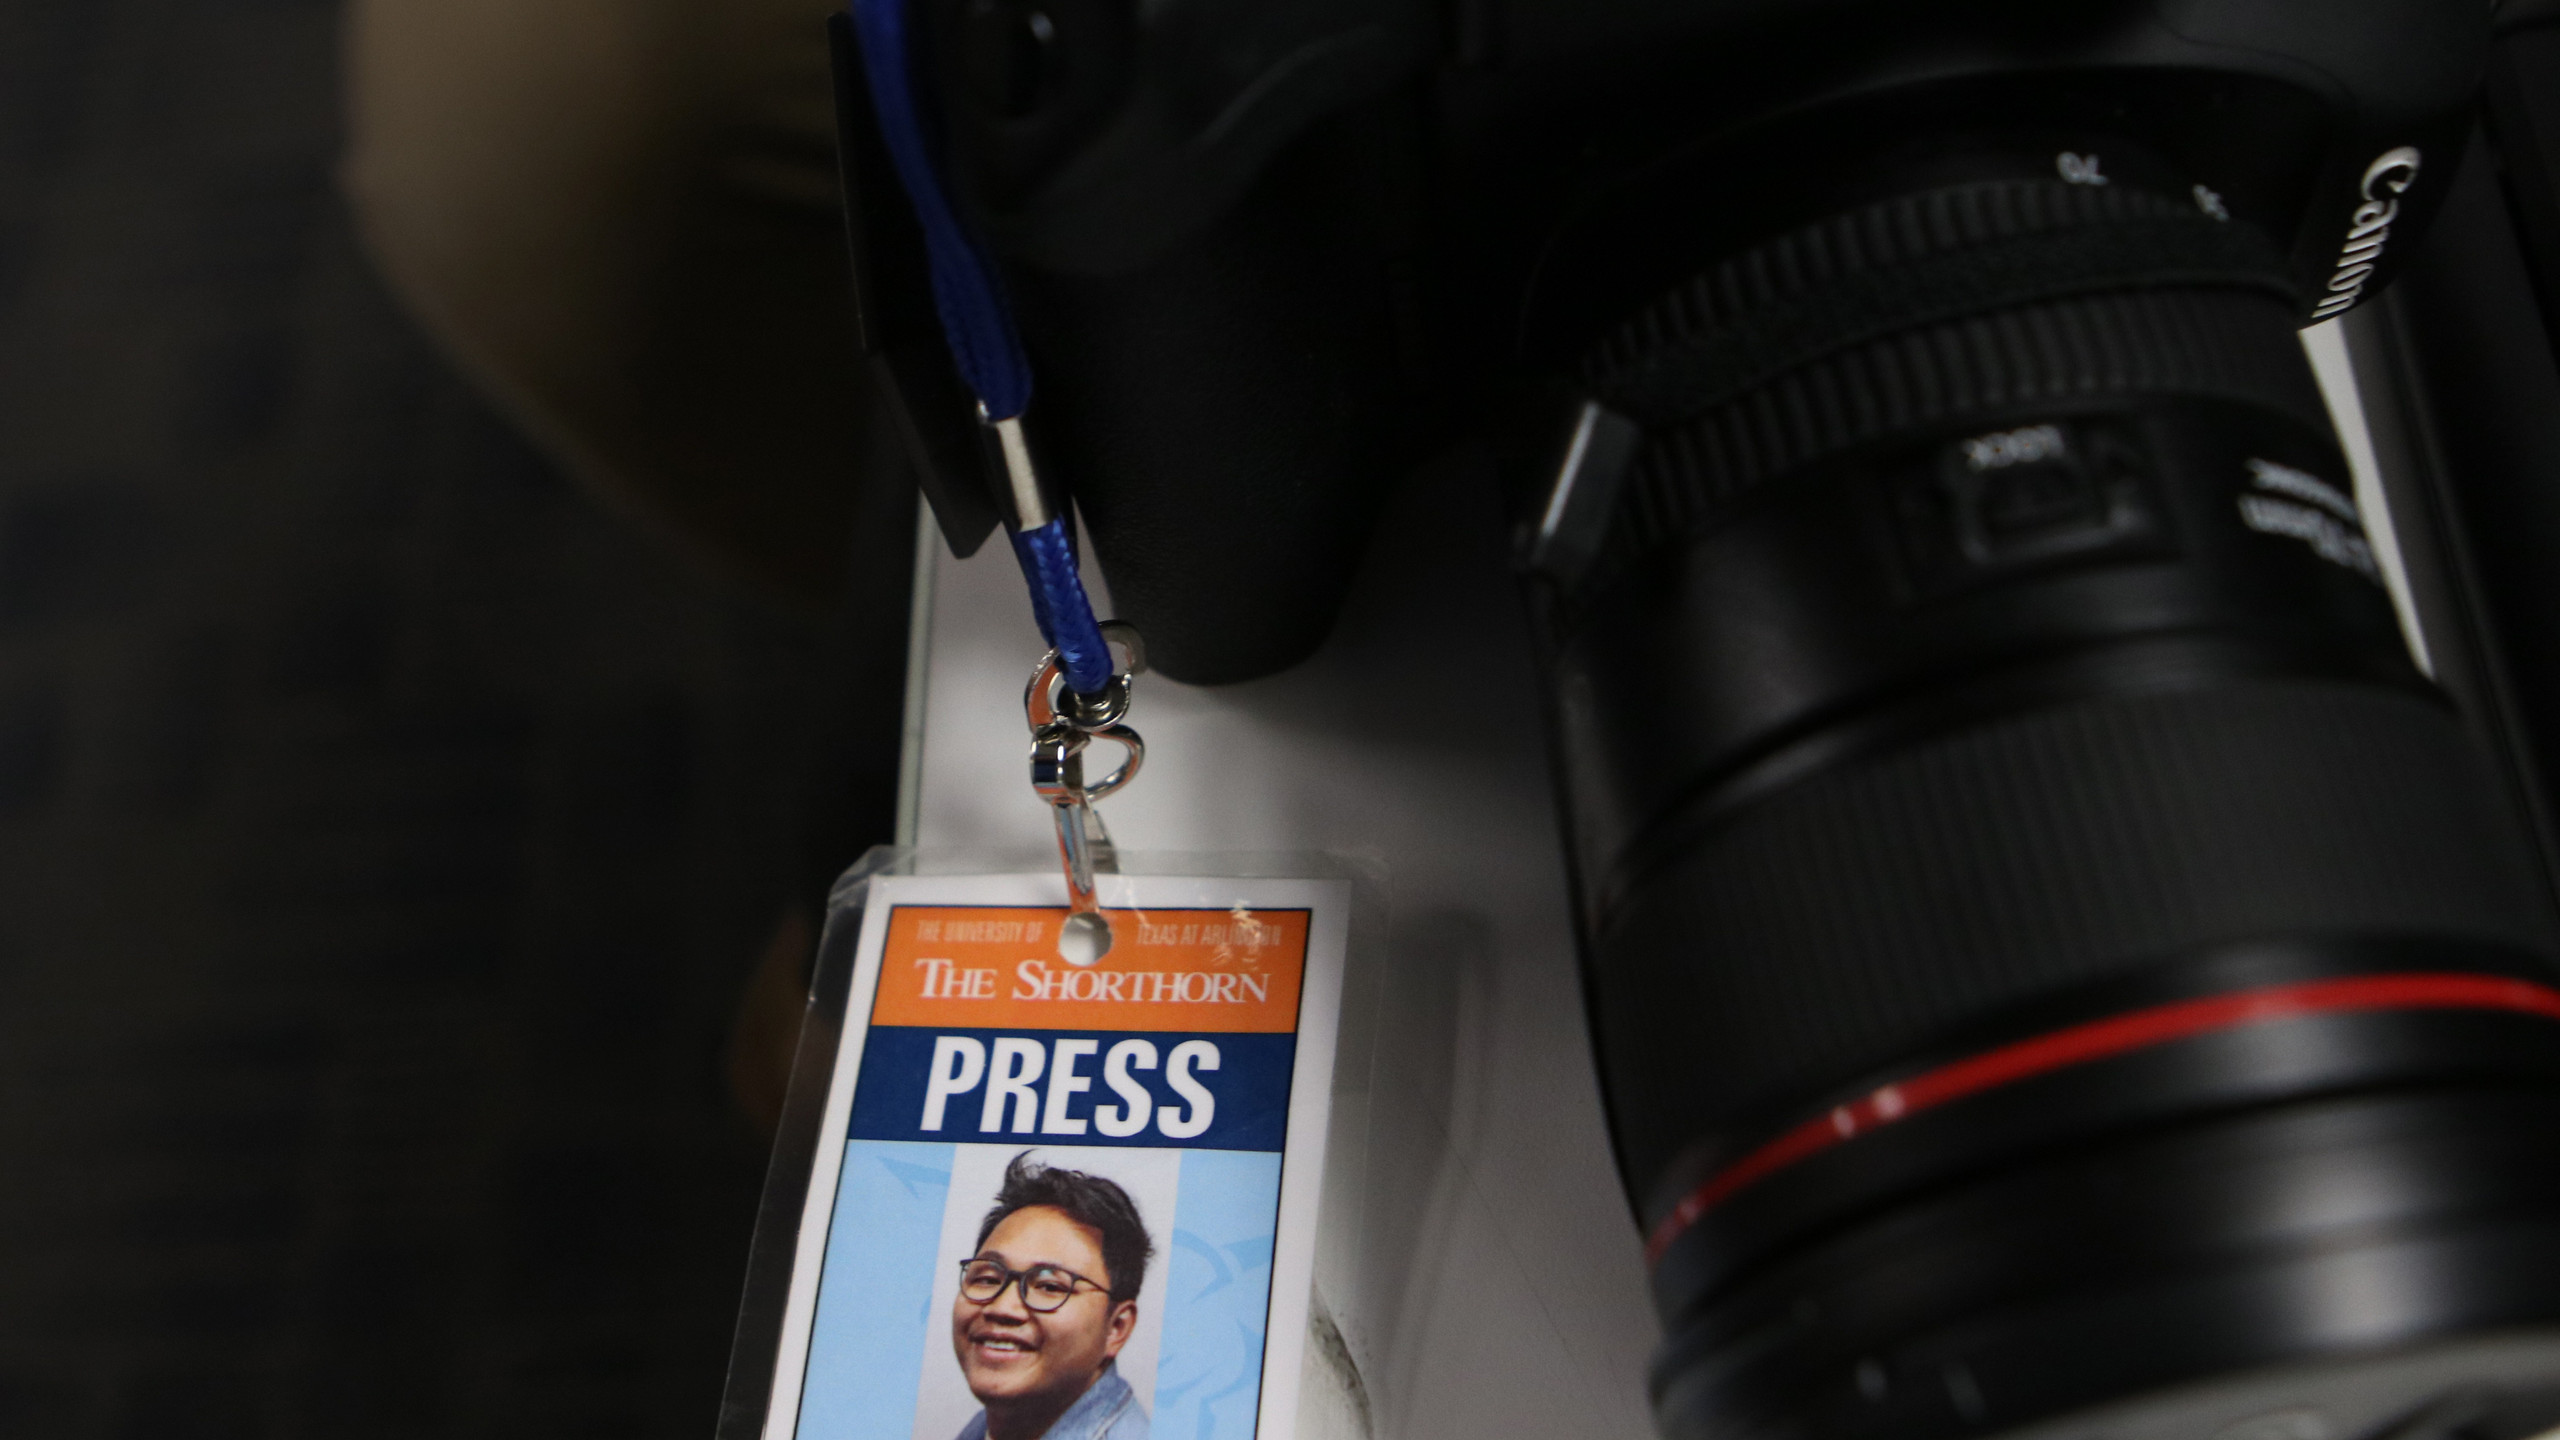 Duy Vu's press badge lays on a desk next to his camera.